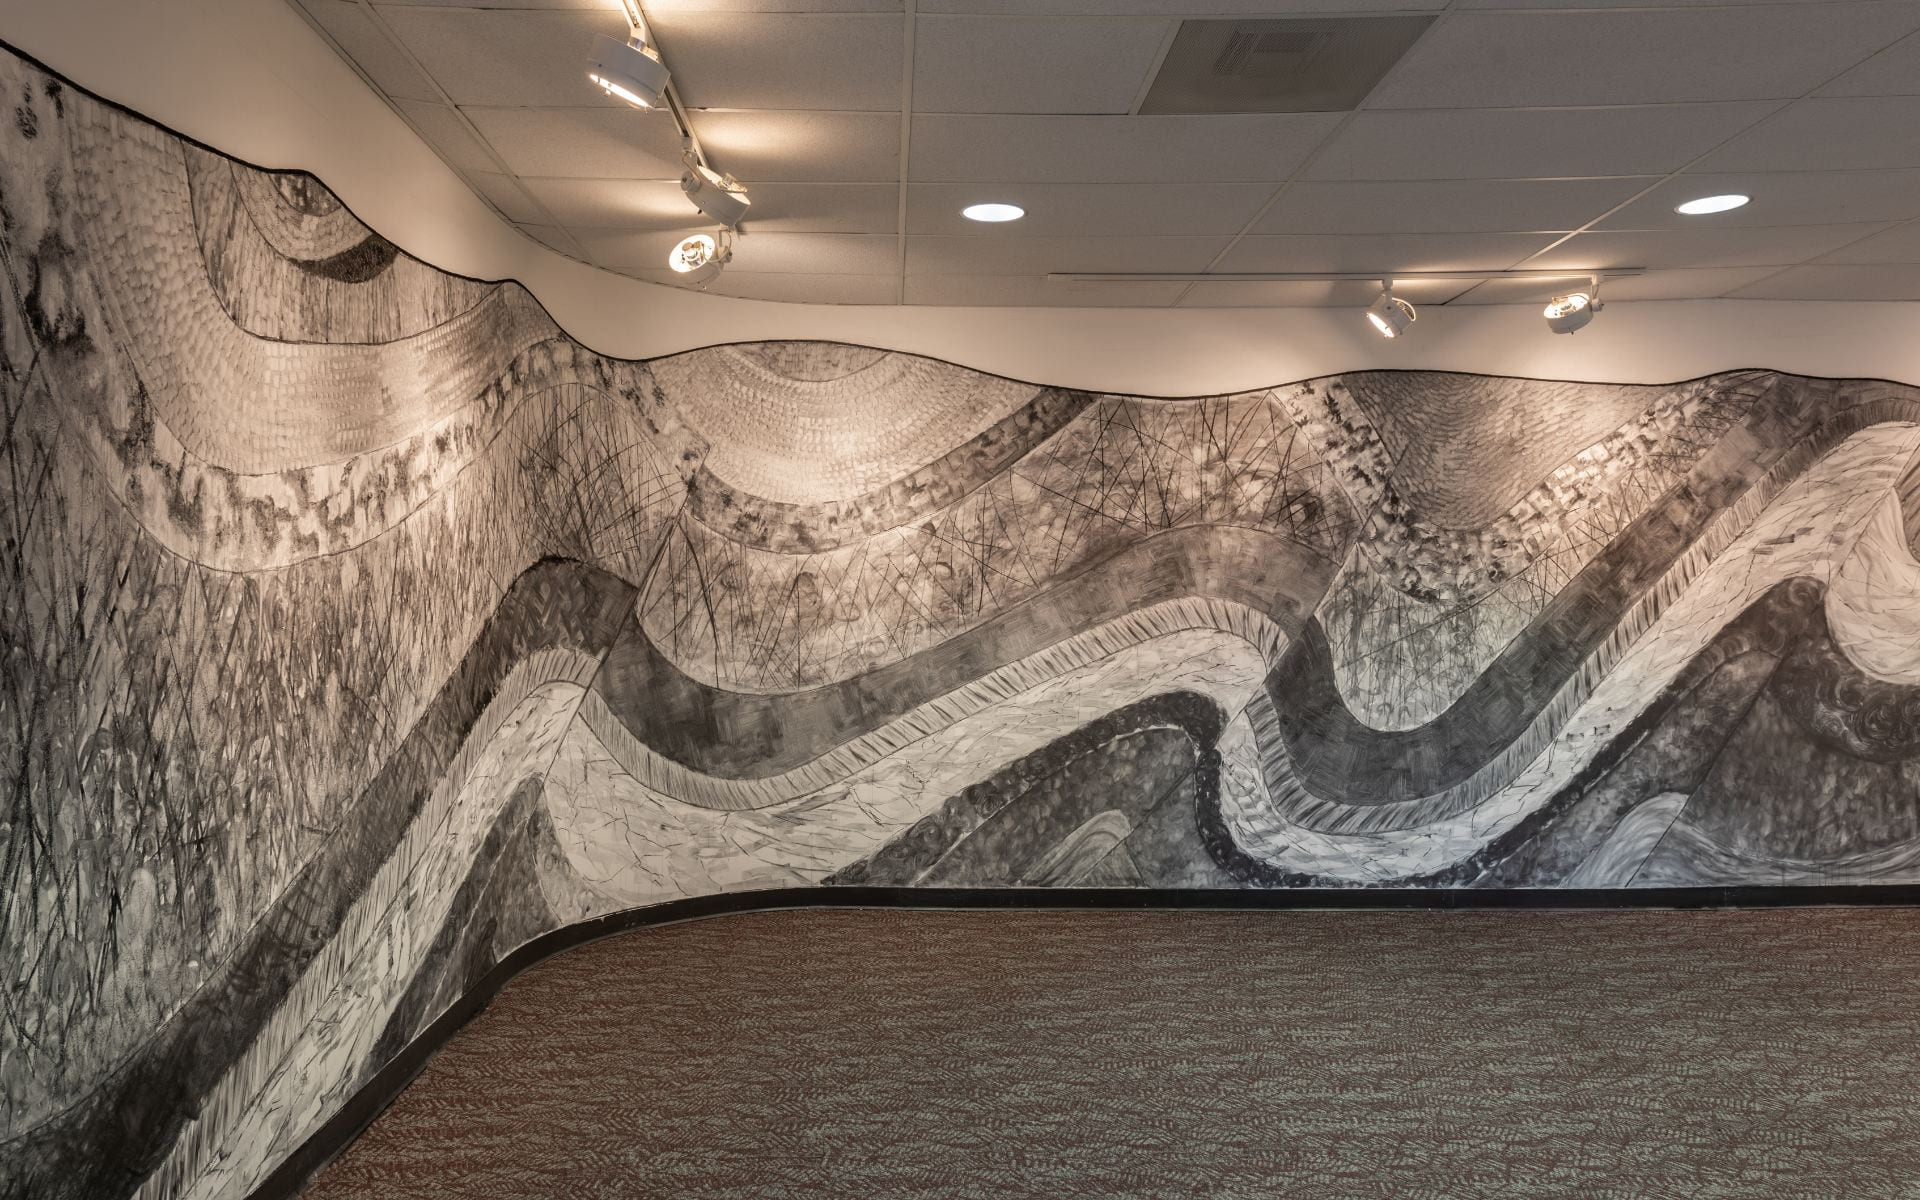 Panoramic charcoal illustration of central Pennsylvania's landscape on a curved wall.